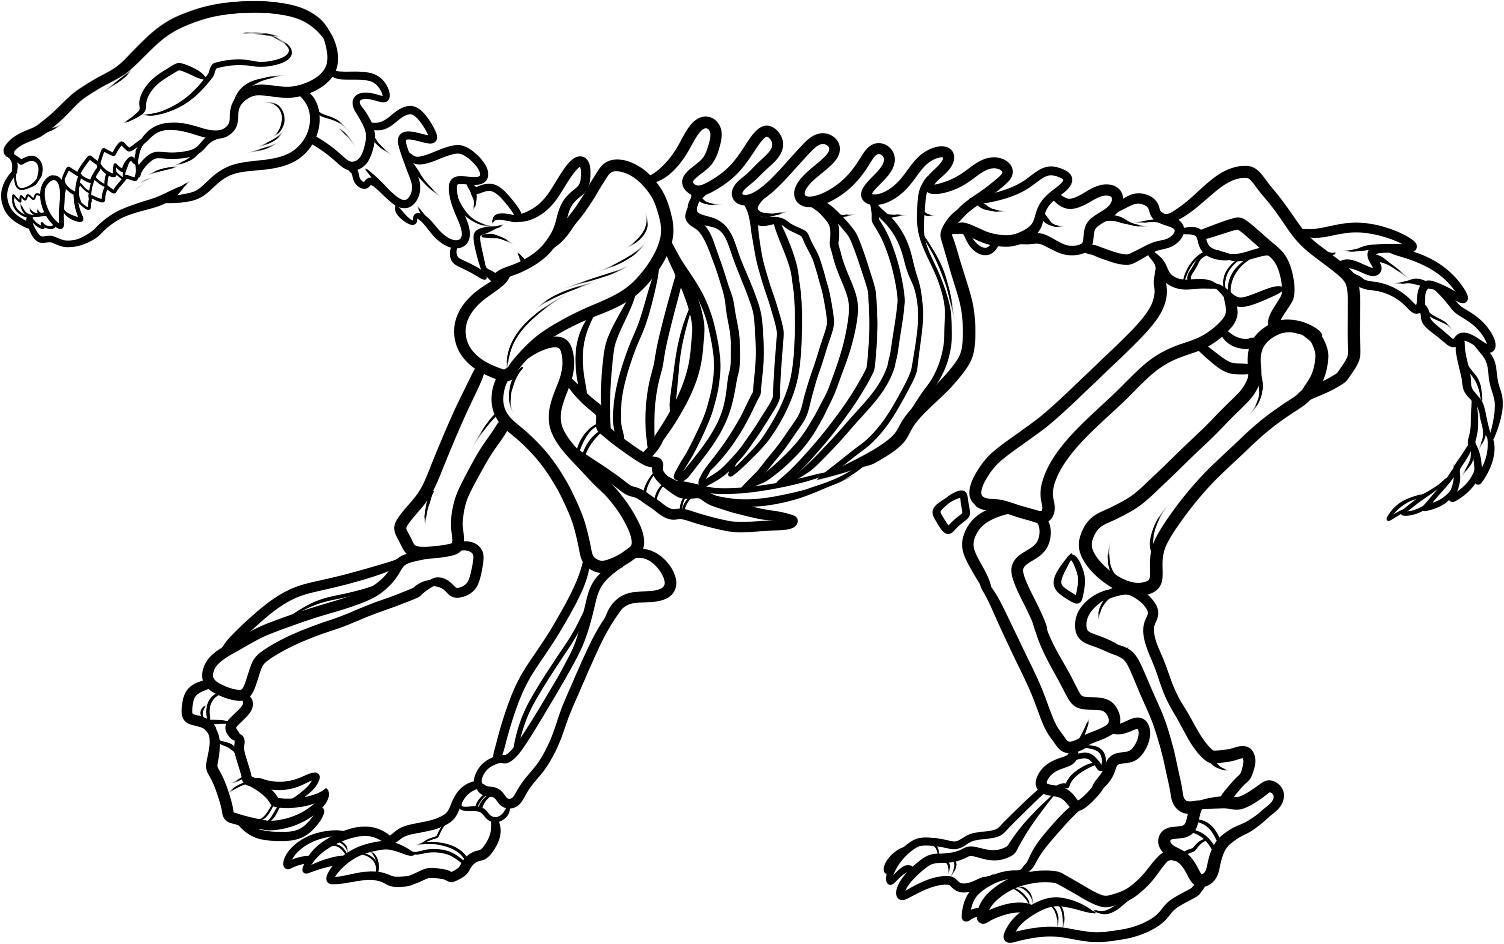 Skeleton Coloring Pages Free Printable Skeleton Coloring Pages For Kids